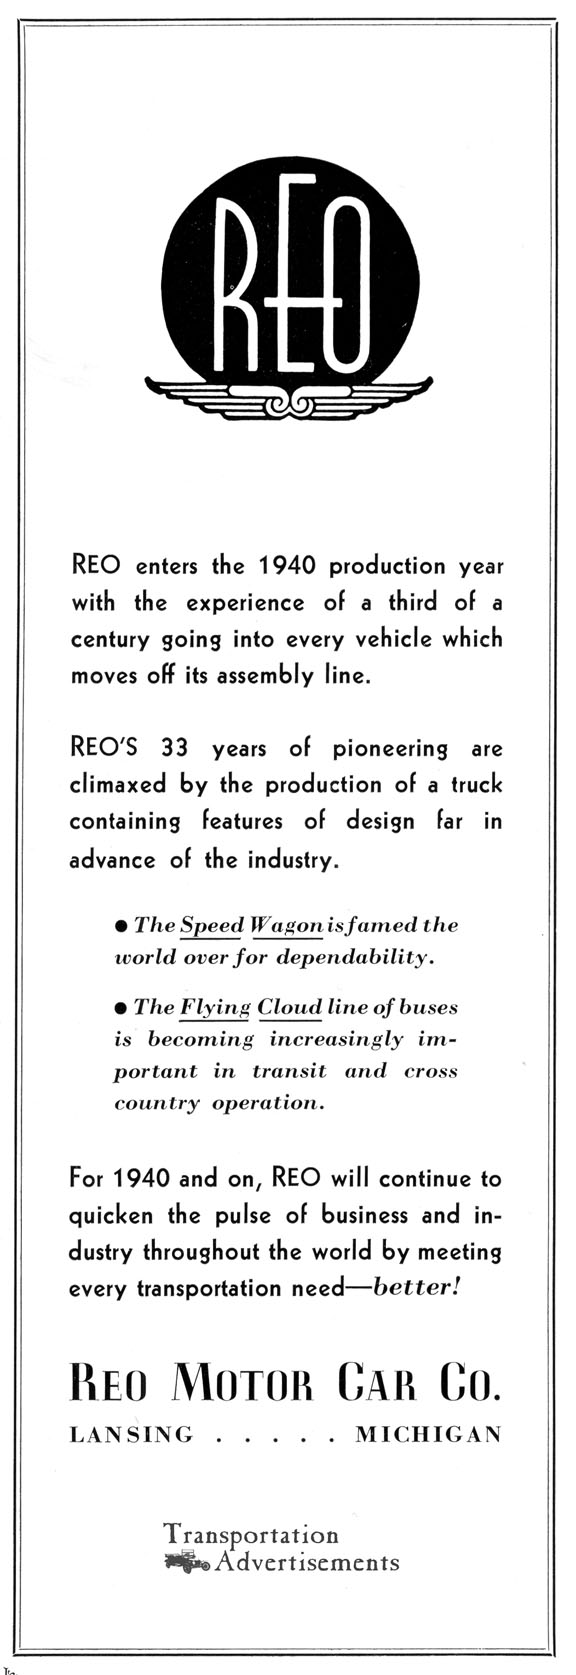 1939 REO Motor Car Company advertisement